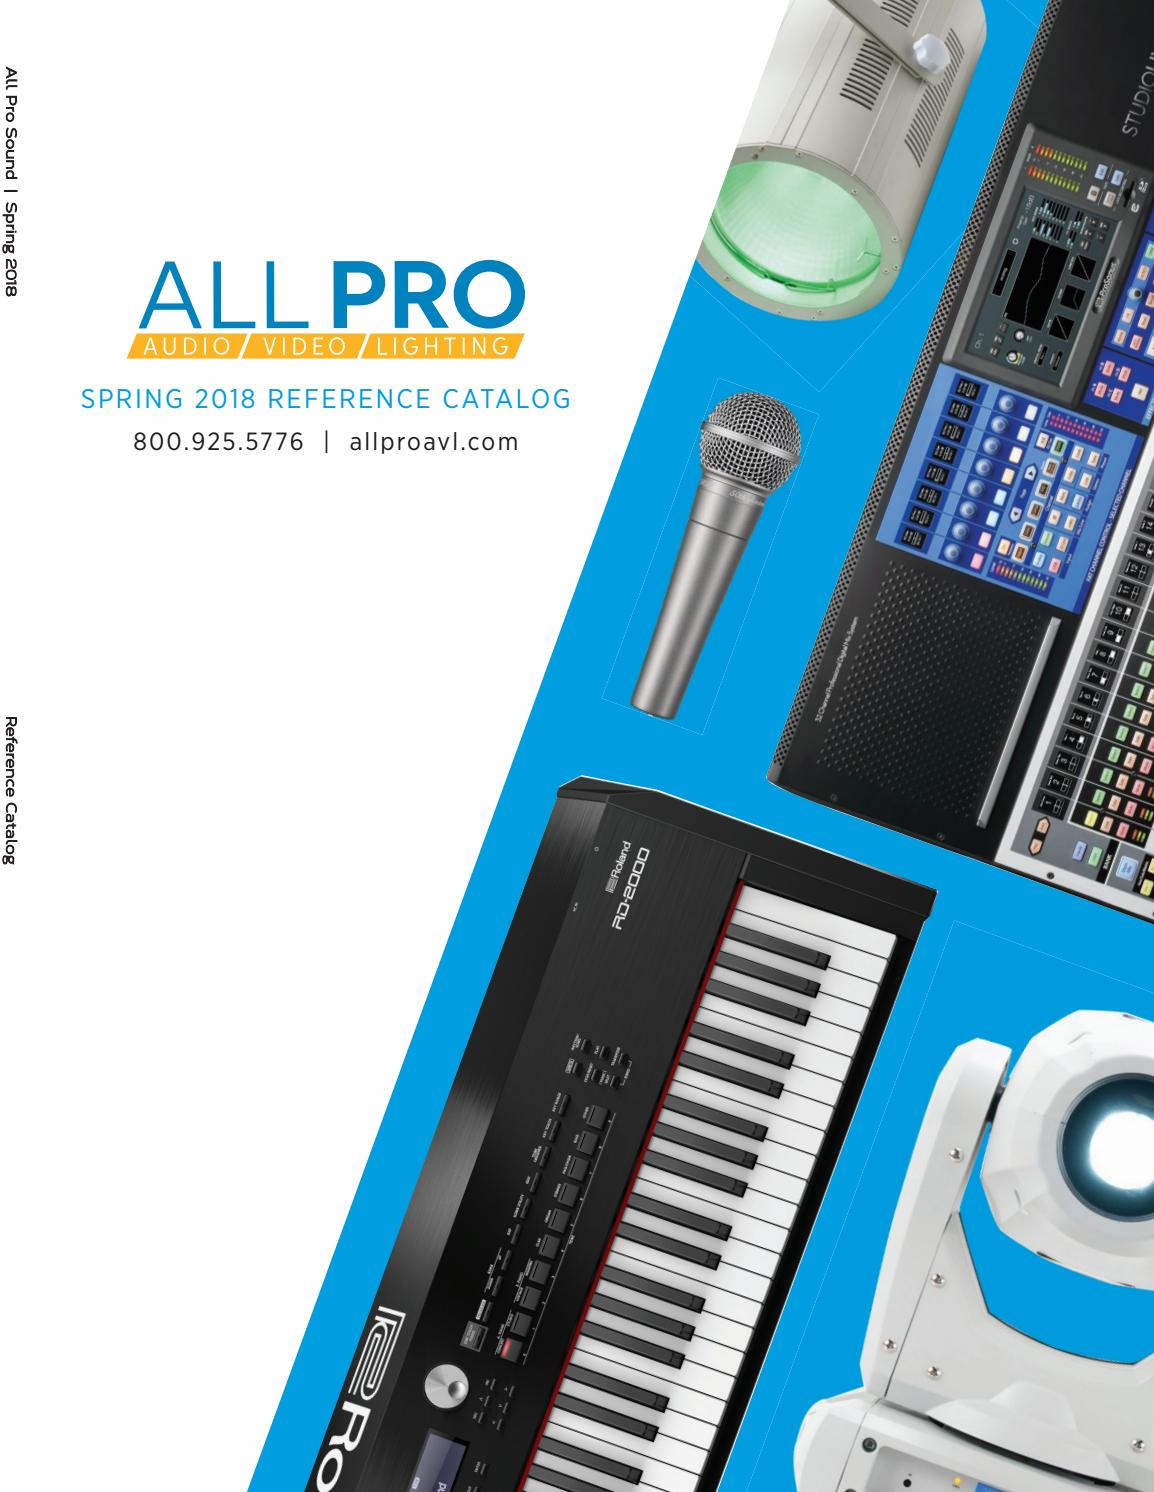 All Pro Avl Spring 2018 Catalog By Allproavl Issuu Product Howto 350w Class D Power Amp In The Size Of An Ipod